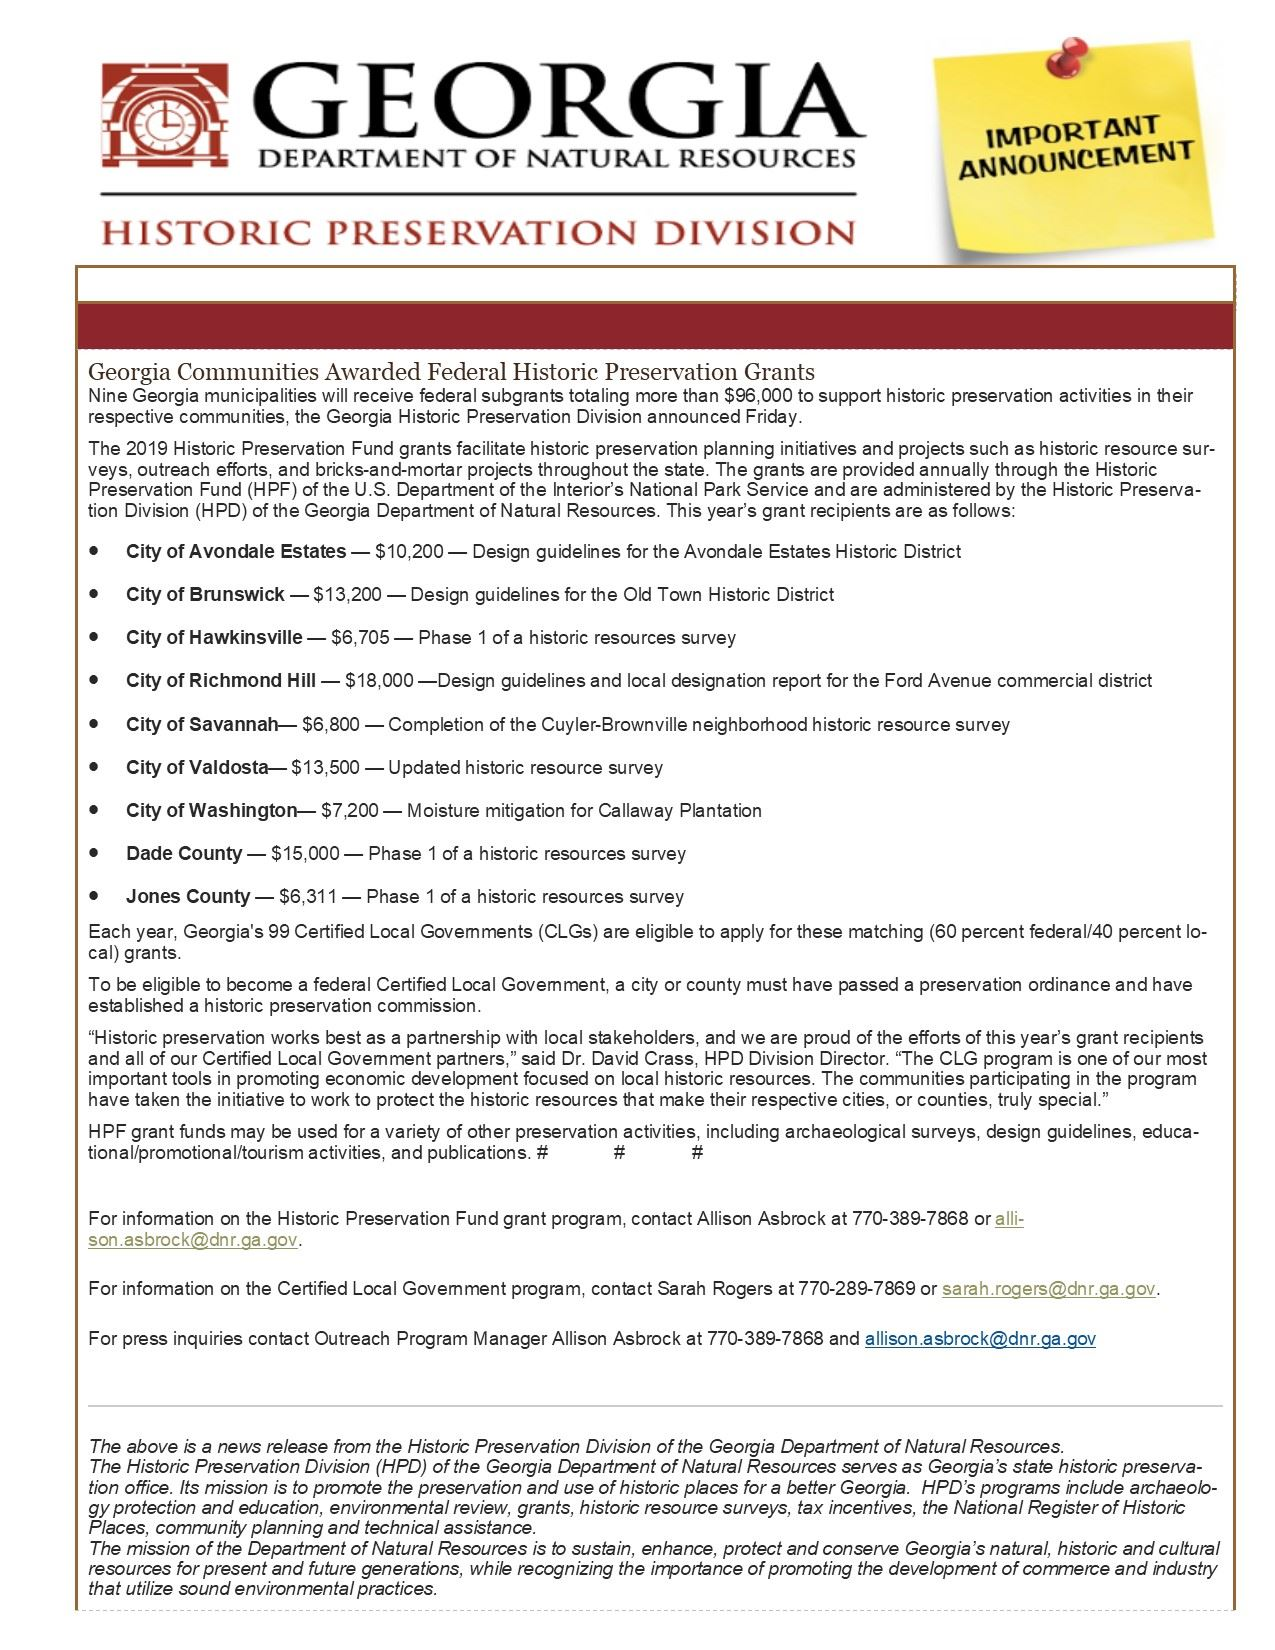 Trenton-Dade Historic Preservation Committee Grant Announcement